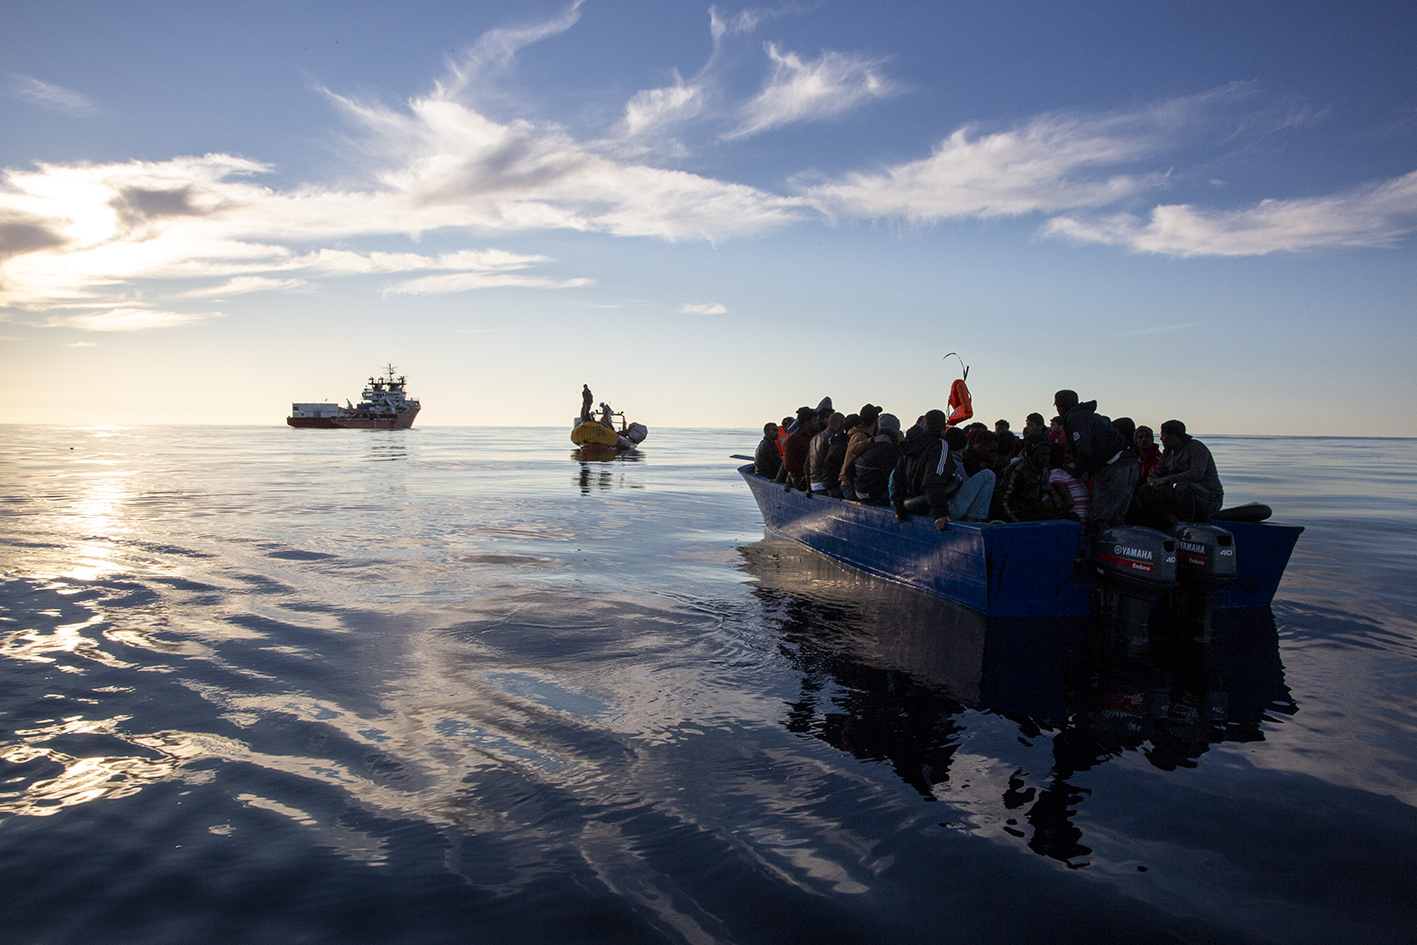 Immigrants arriving in Europe from the coast of Libya in a dangerously overcrowded wooden boat.